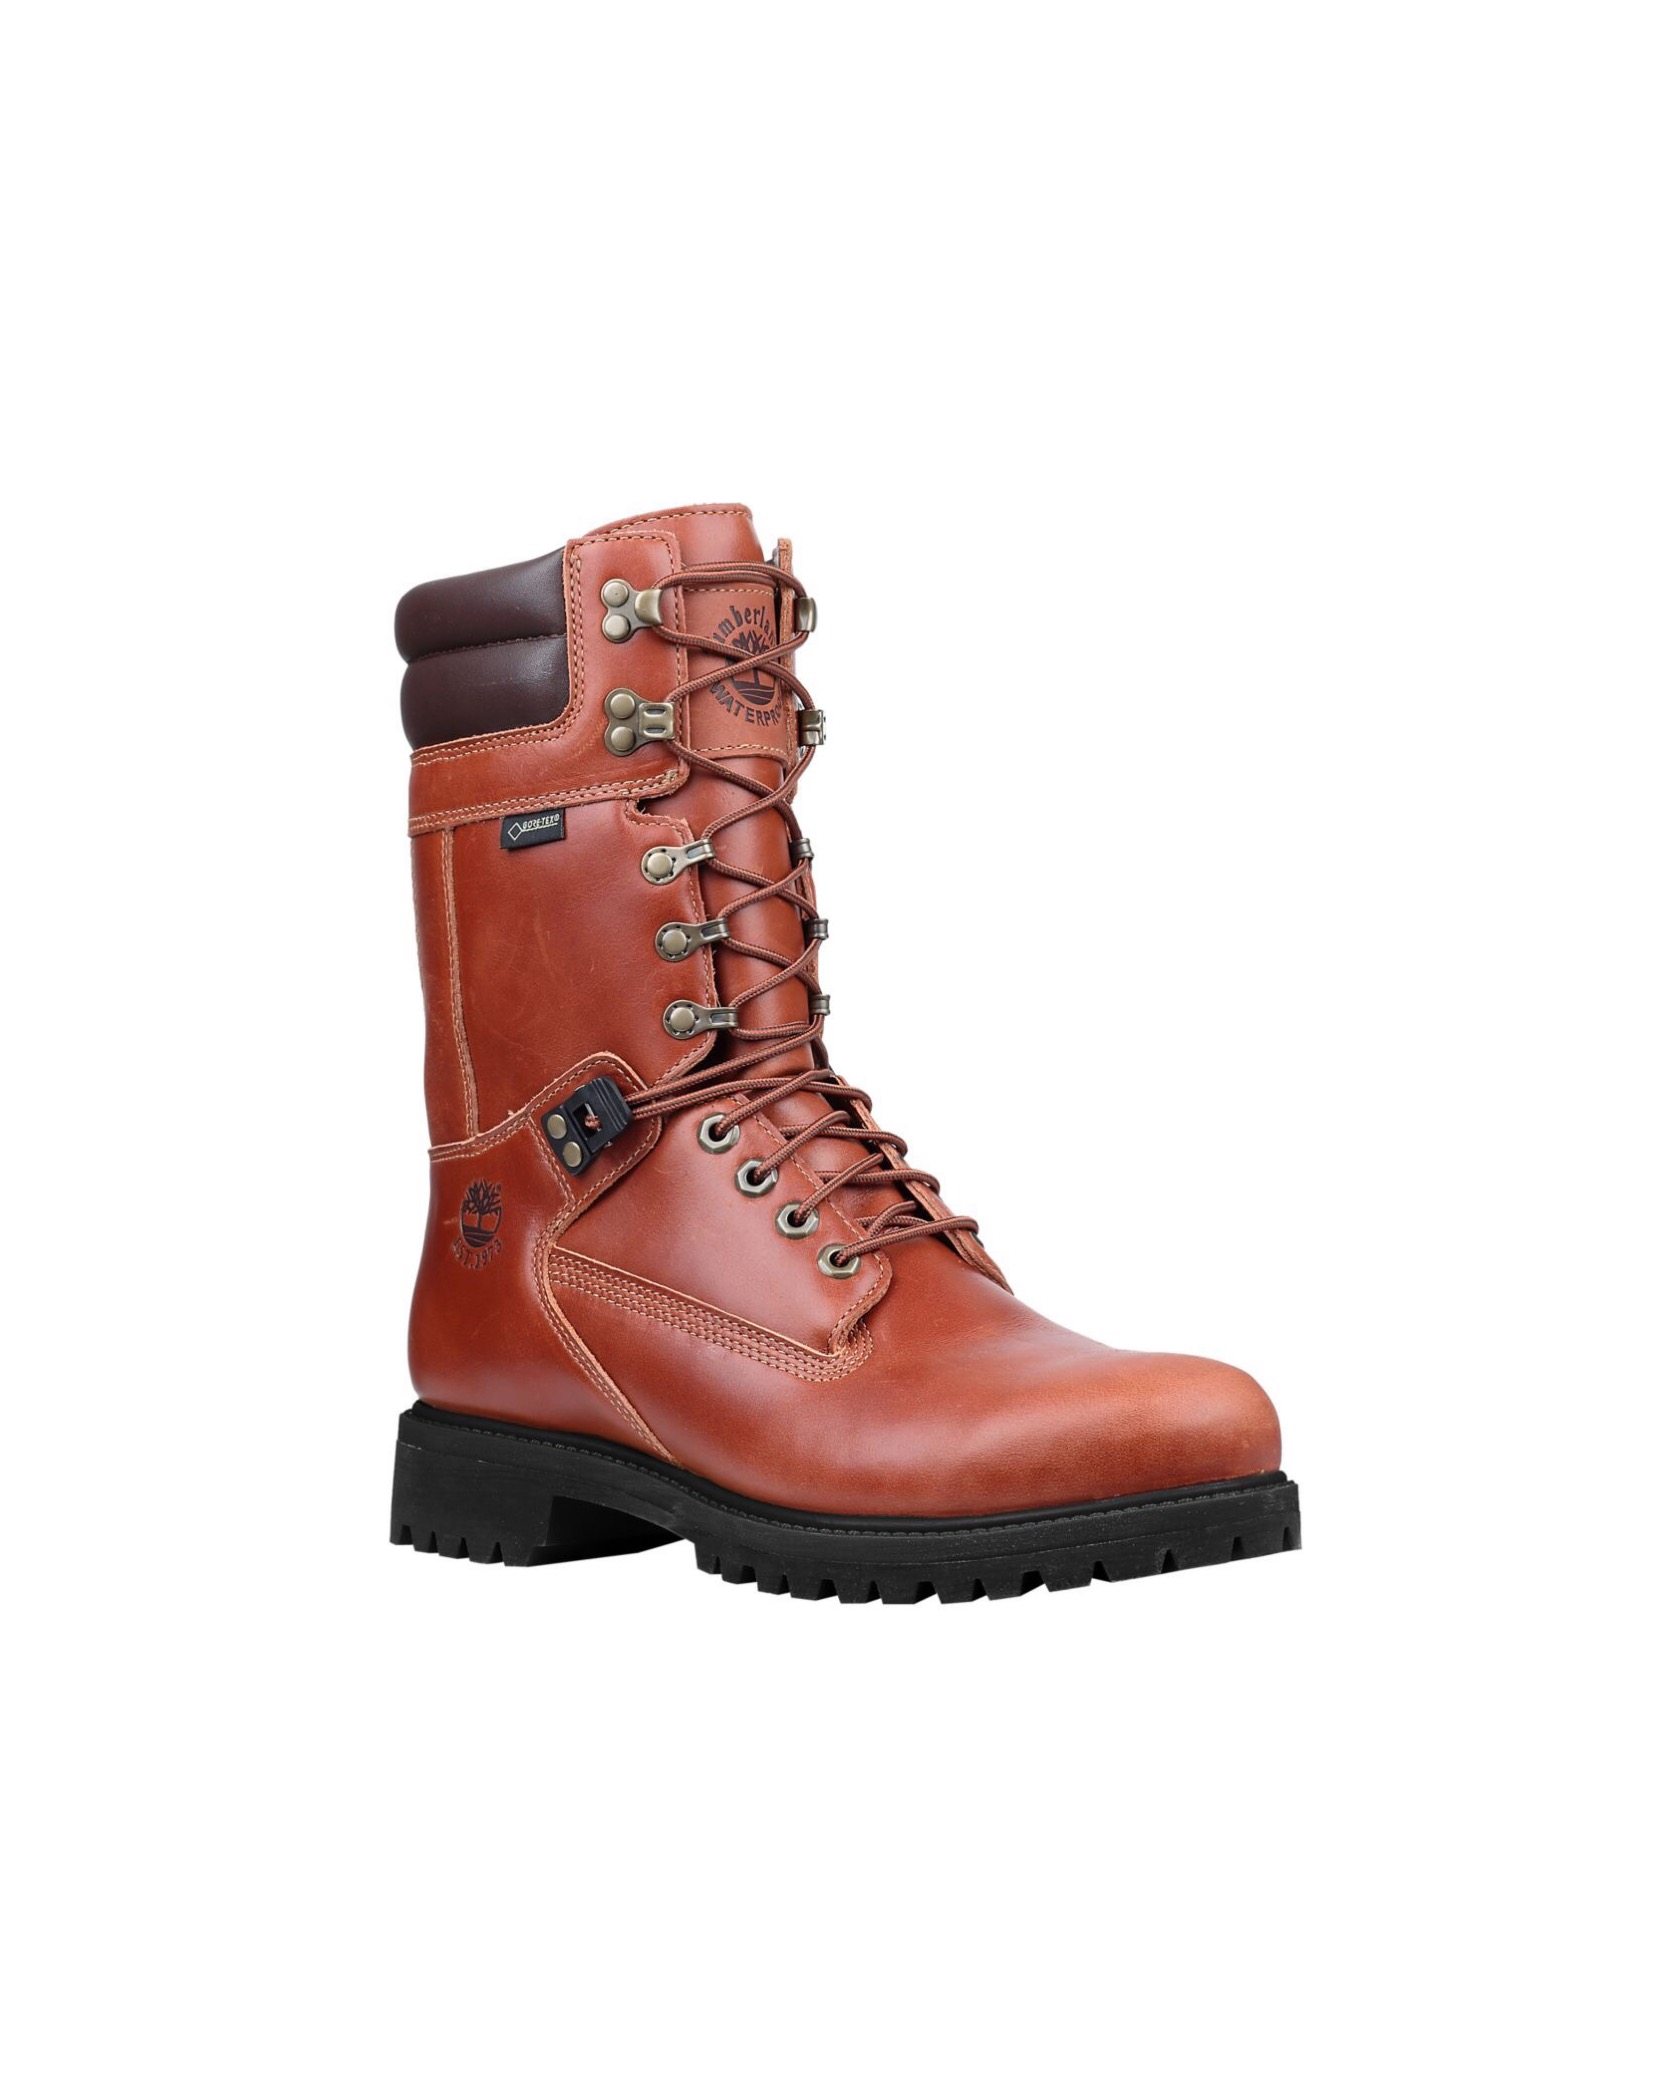 Timberland Winter Extreme Super Boots